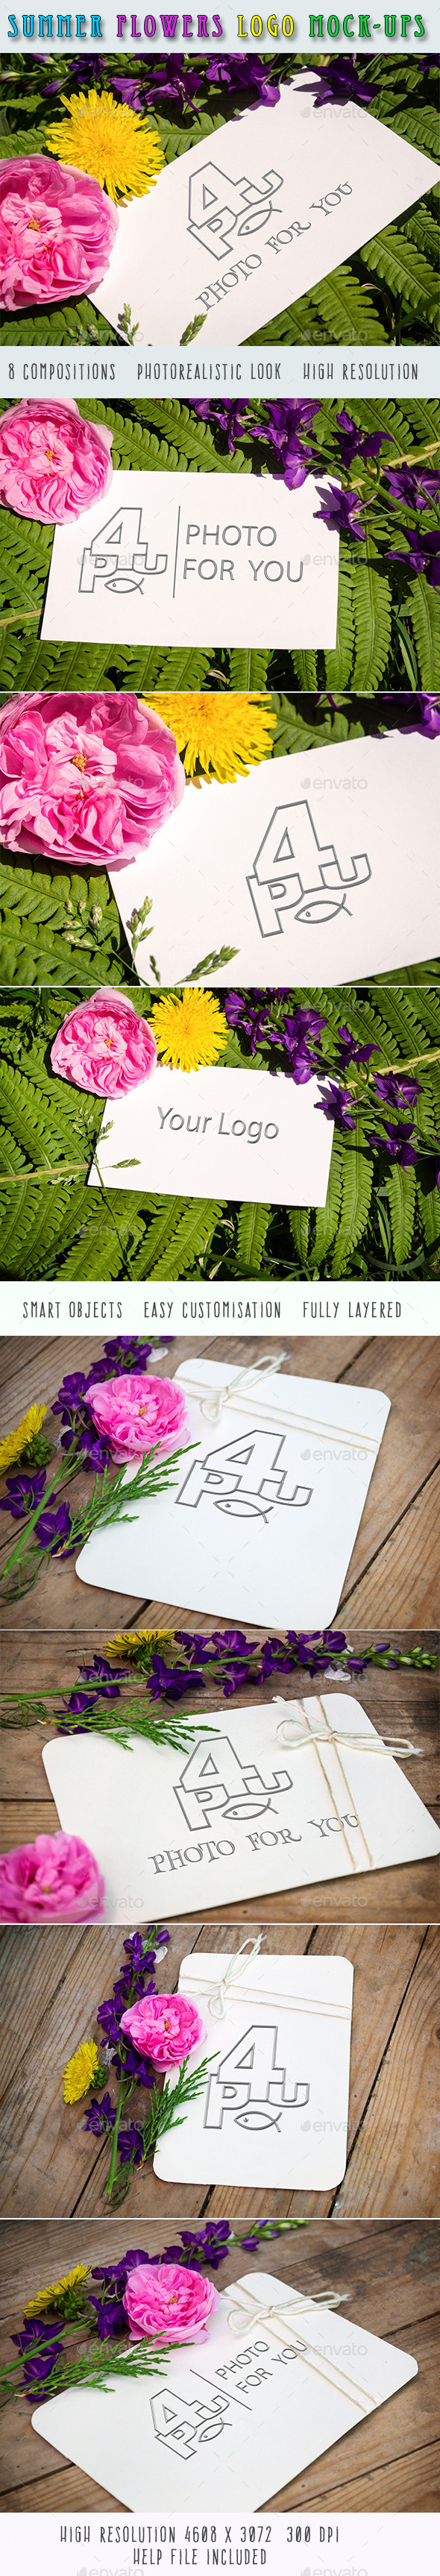 GraphicRiver Summer Flowers Logo Mock-Ups 11857237